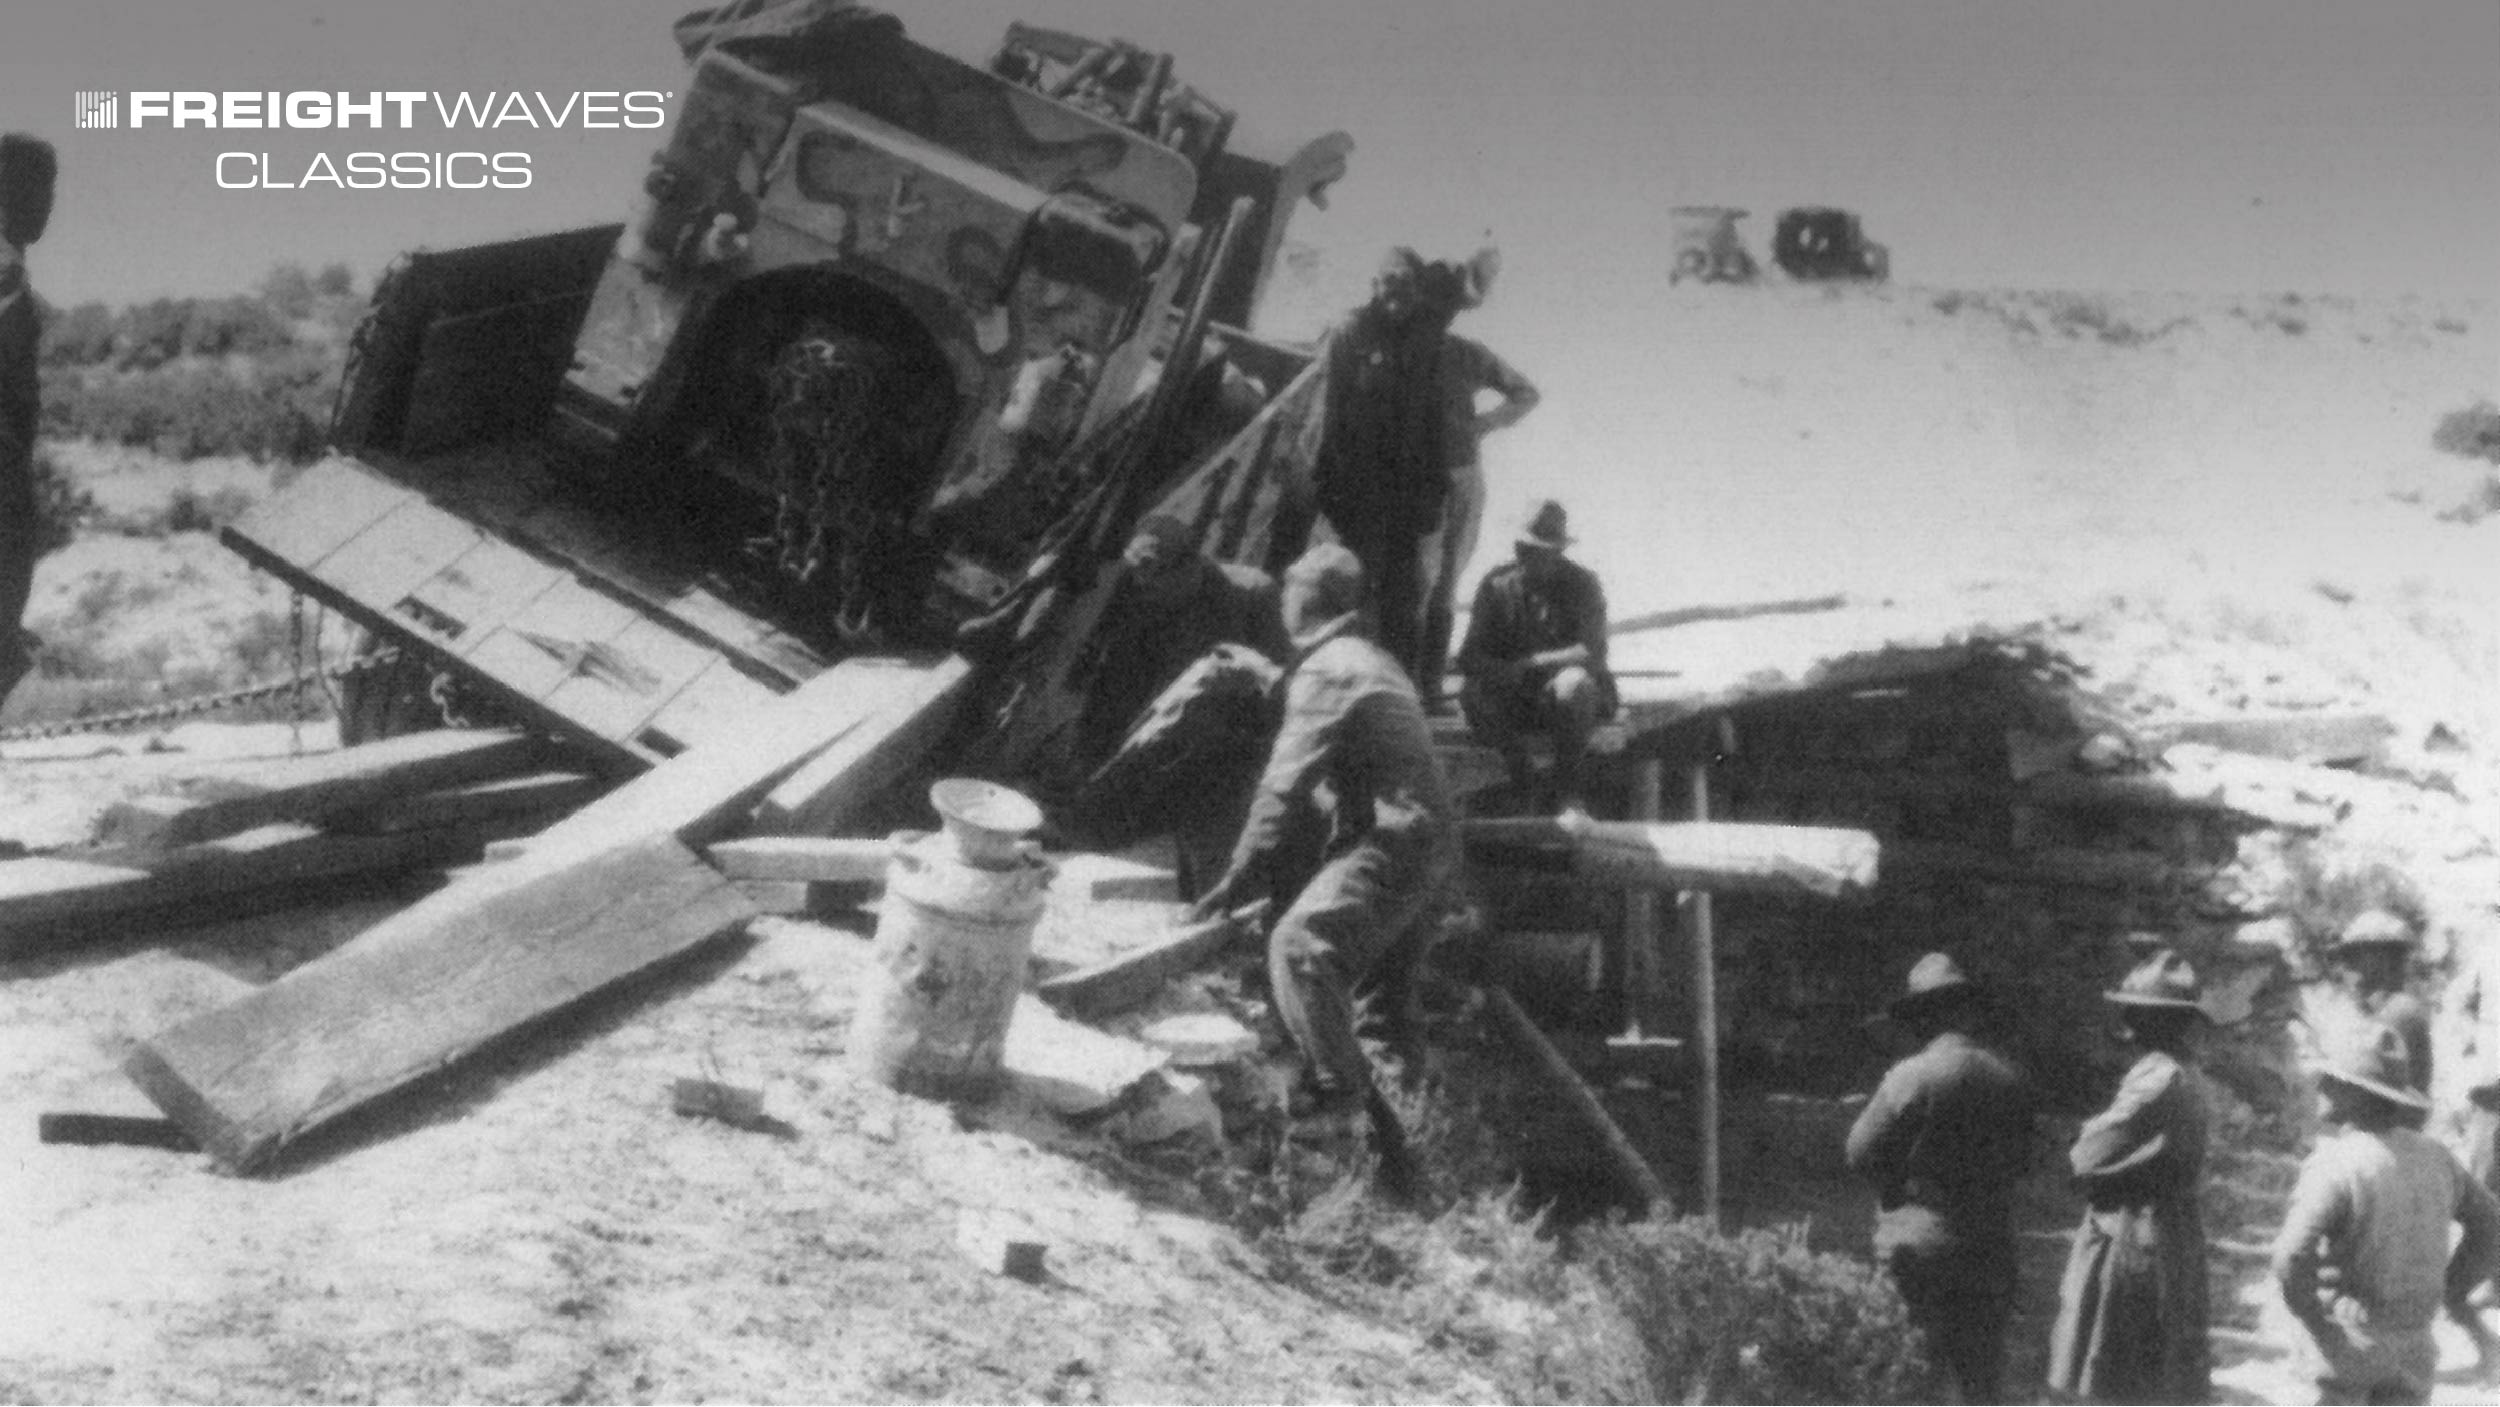 One of many mishaps along the route of the convoy. (Photo: Lincoln Highway Association)